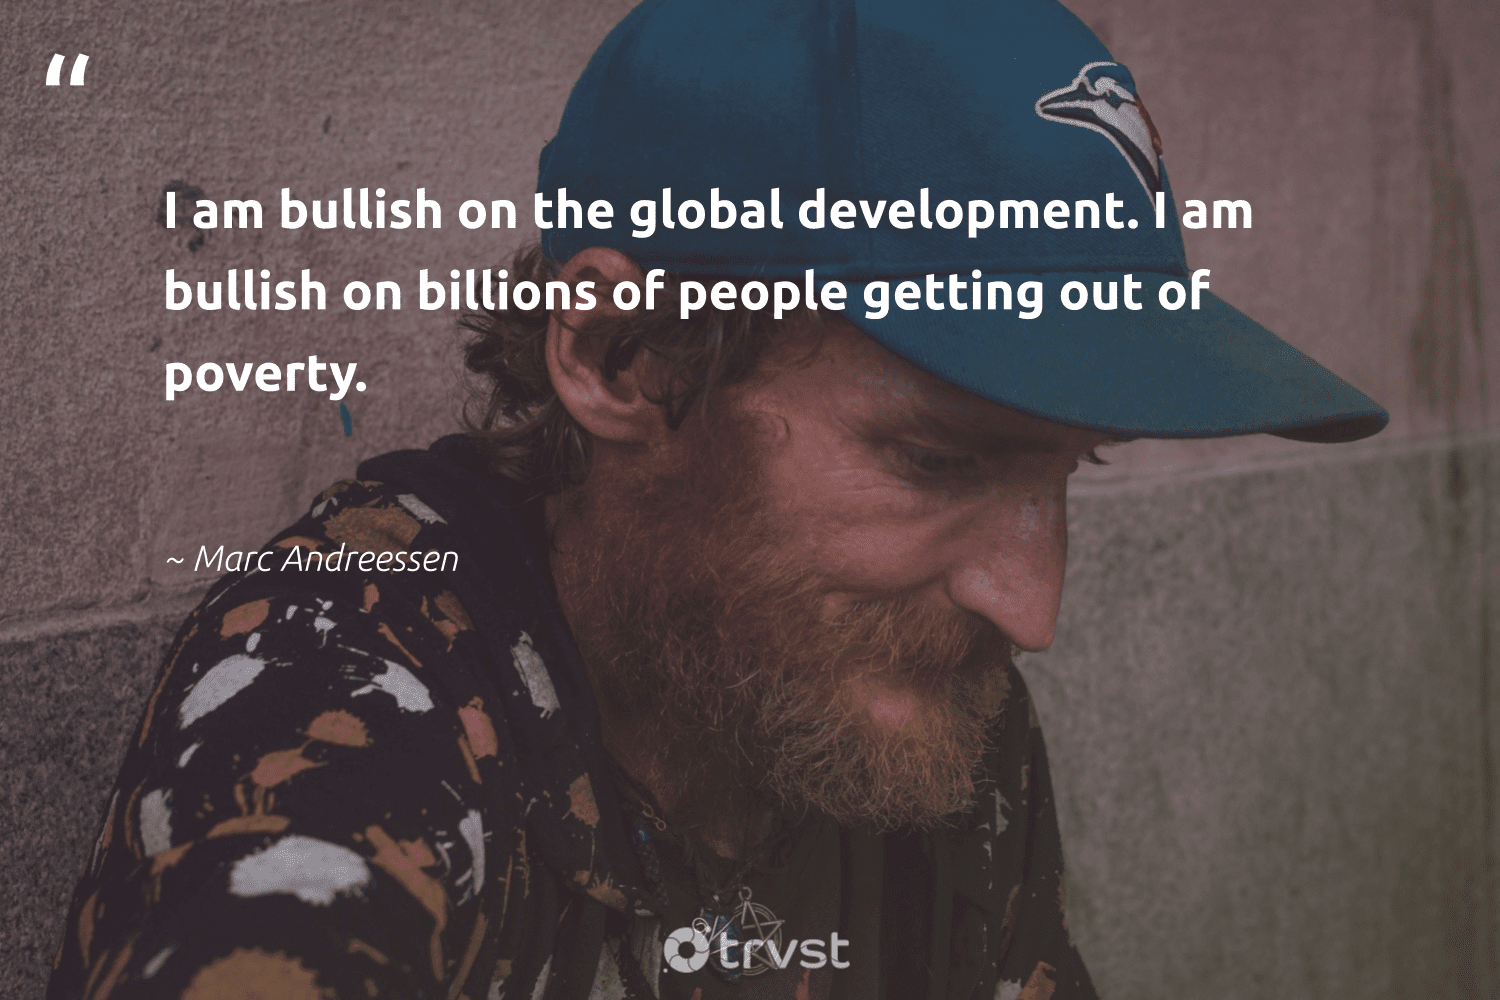 """""""I am bullish on the global development. I am bullish on billions of people getting out of poverty.""""  - Marc Andreessen #trvst #quotes #poverty #development #endpoverty #equalopportunity #weareallone #bethechange #equalrights #sustainablefutures #collectiveaction #makeadifference"""